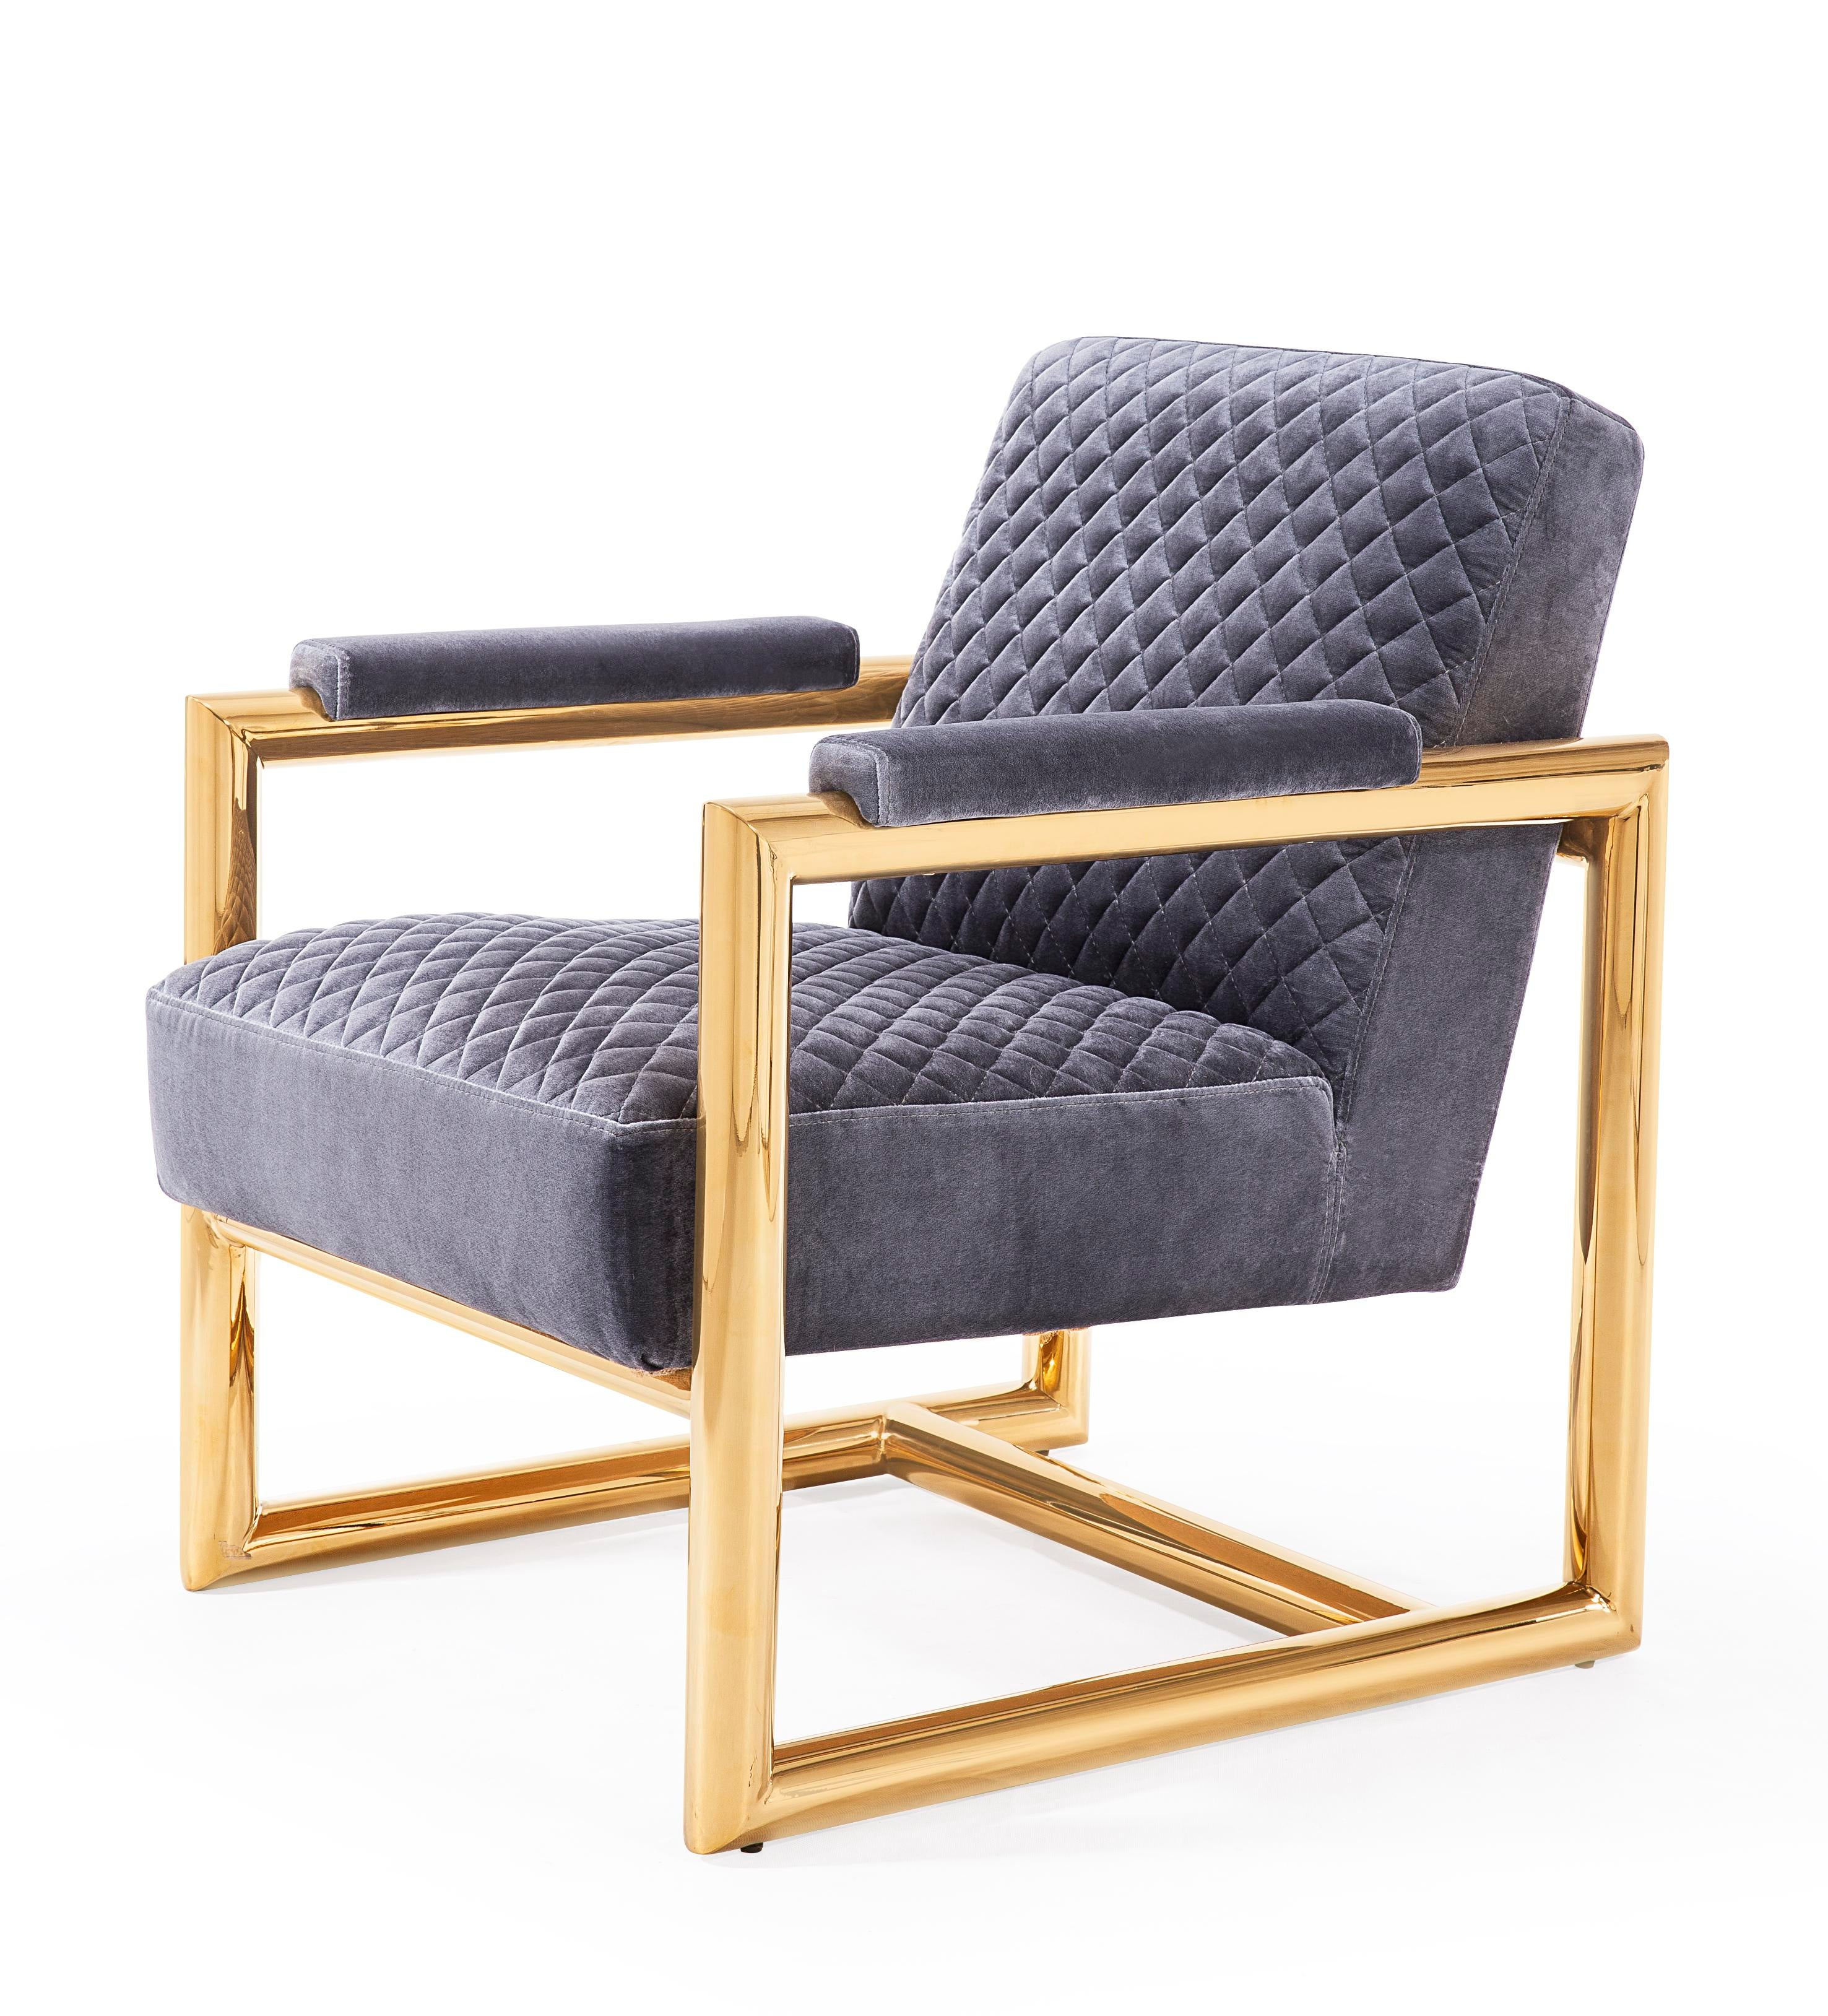 Elevate Your Interior With This Contemporary, Quilted Accent Chair From  Blink Home! Perfect For